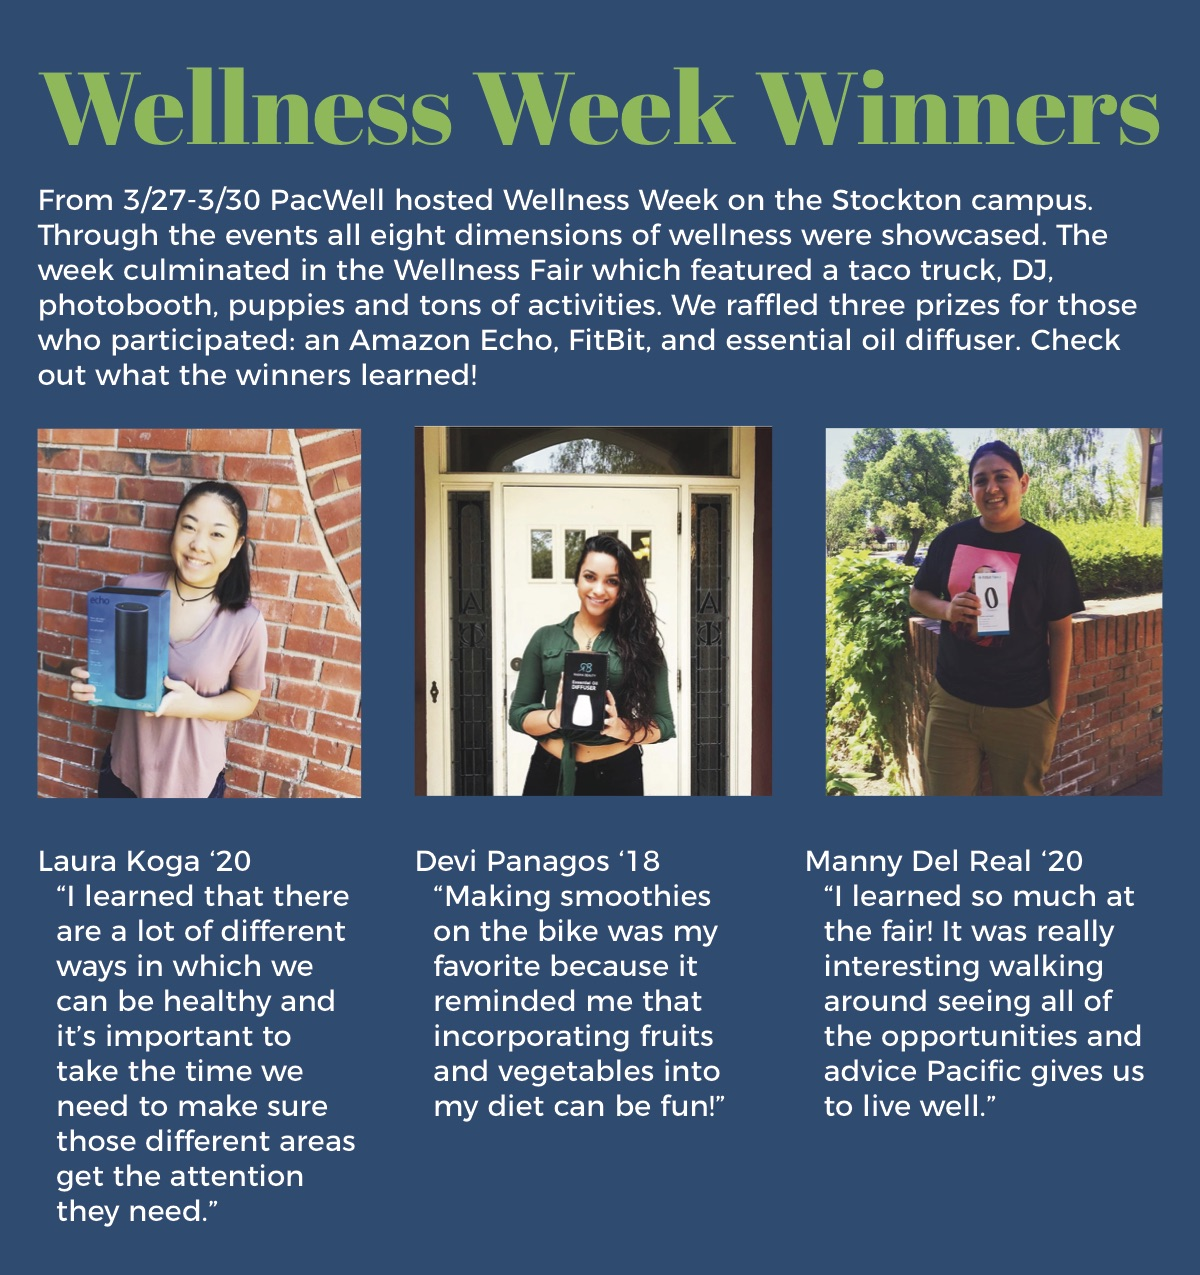 """Wellness Week Winners From 3/27-3/30 PacWell hosted Wellness Week on the Stockton campus. Through the events all eight dimensions of wellness were showcased. The week culminated in the Wellness Fair which featured a taco truck, DJ, photobooth, puppies and tons of activities. We ra ed three prizes for those who participated: an Amazon Echo, FitBit, and essential oil diffuser. Check out what the winners learned! Laura Koga '20 """"I learned that there are a lot of different ways in which we can be healthy and it's important to take the time we need to make sure those different areas get the attention they need."""" Devi Panagos '18 """"Making smoothies on the bike was my favorite because it reminded me that incorporating fruits and vegetables into my diet can be fun!"""" Manny Del Real '20 """"I learned so much at the fair! It was really interesting walking around seeing all of the opportunities and advice Paci c gives us to live well."""""""